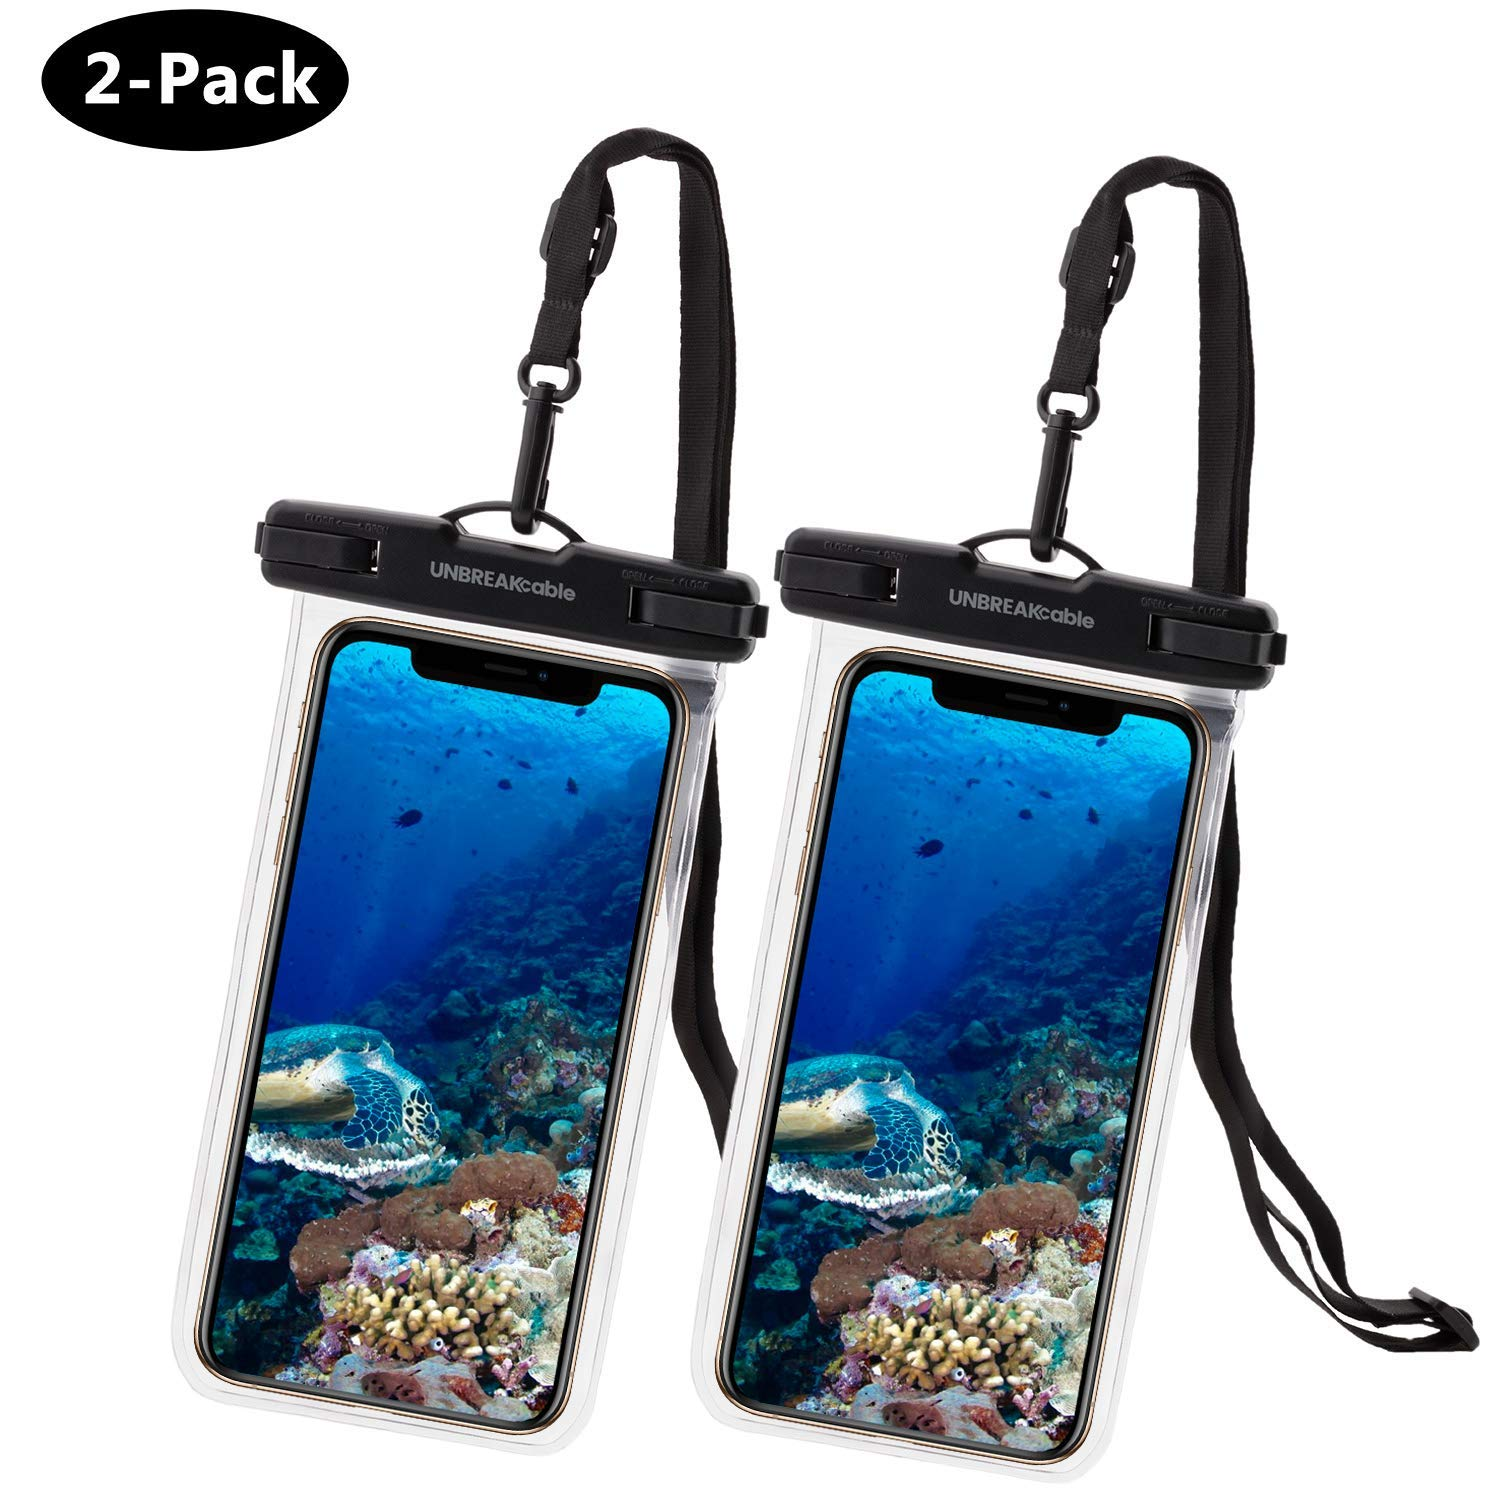 UNBREAKcable Universal Waterproof Case 2 Pack - IPX8 Waterproof Phone Pouch Dry Bag for iPhone Xs Max XR XS X 8 7 6s 6 Plus, Samsung S10+ S10 S10e S9 S8, Google Pixel 2, Up to 6.6 inch by UNBREAKcable